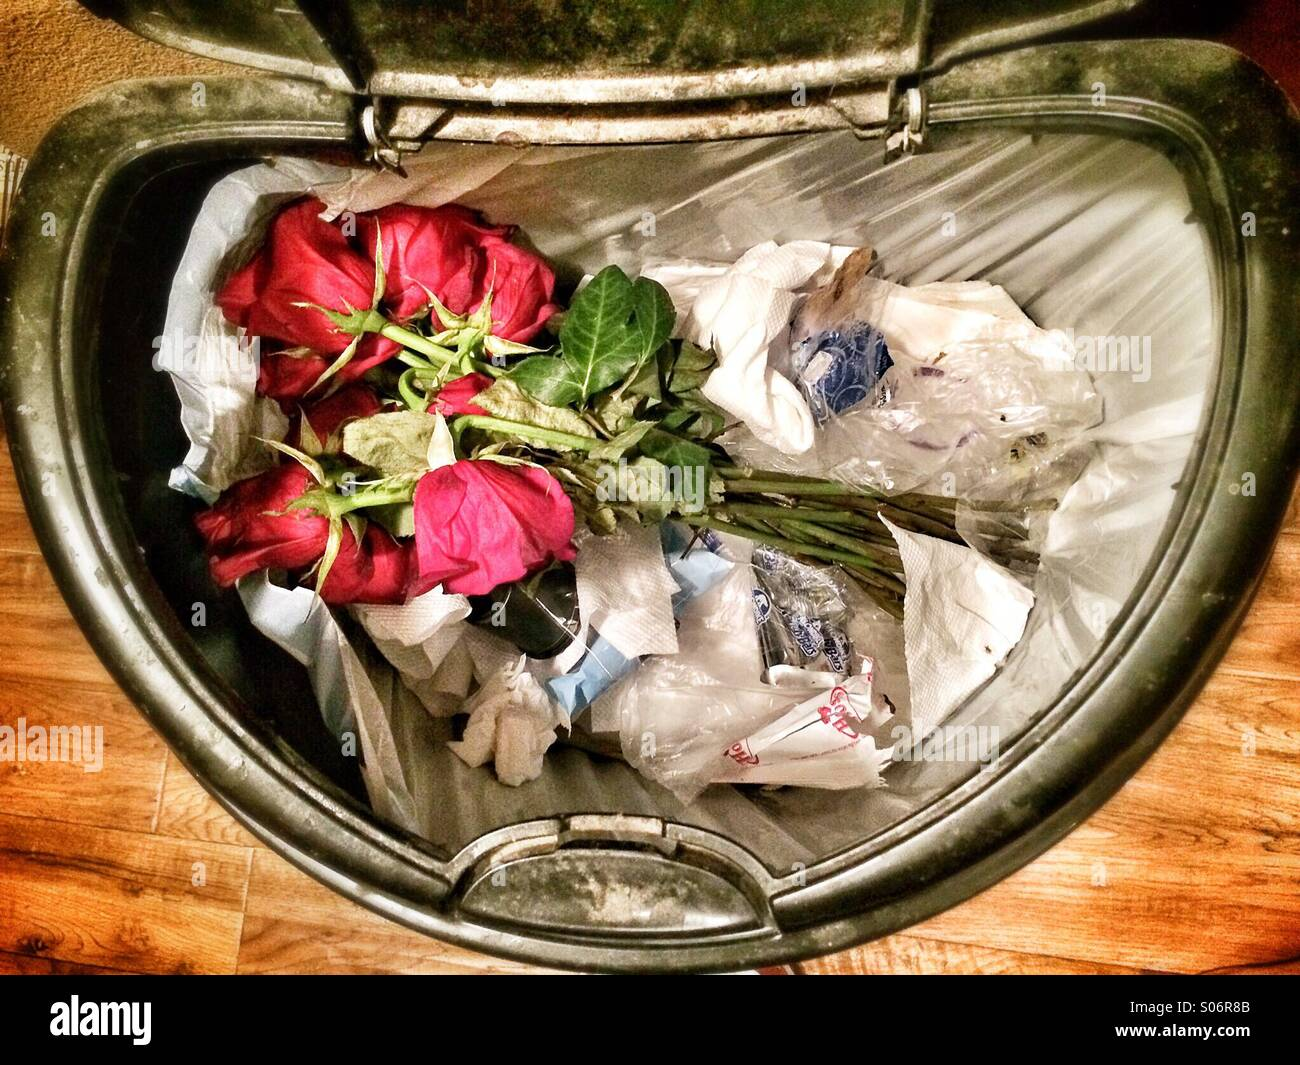 A bouquet of flowers in the trash stock photo 309936603 alamy a bouquet of flowers in the trash izmirmasajfo